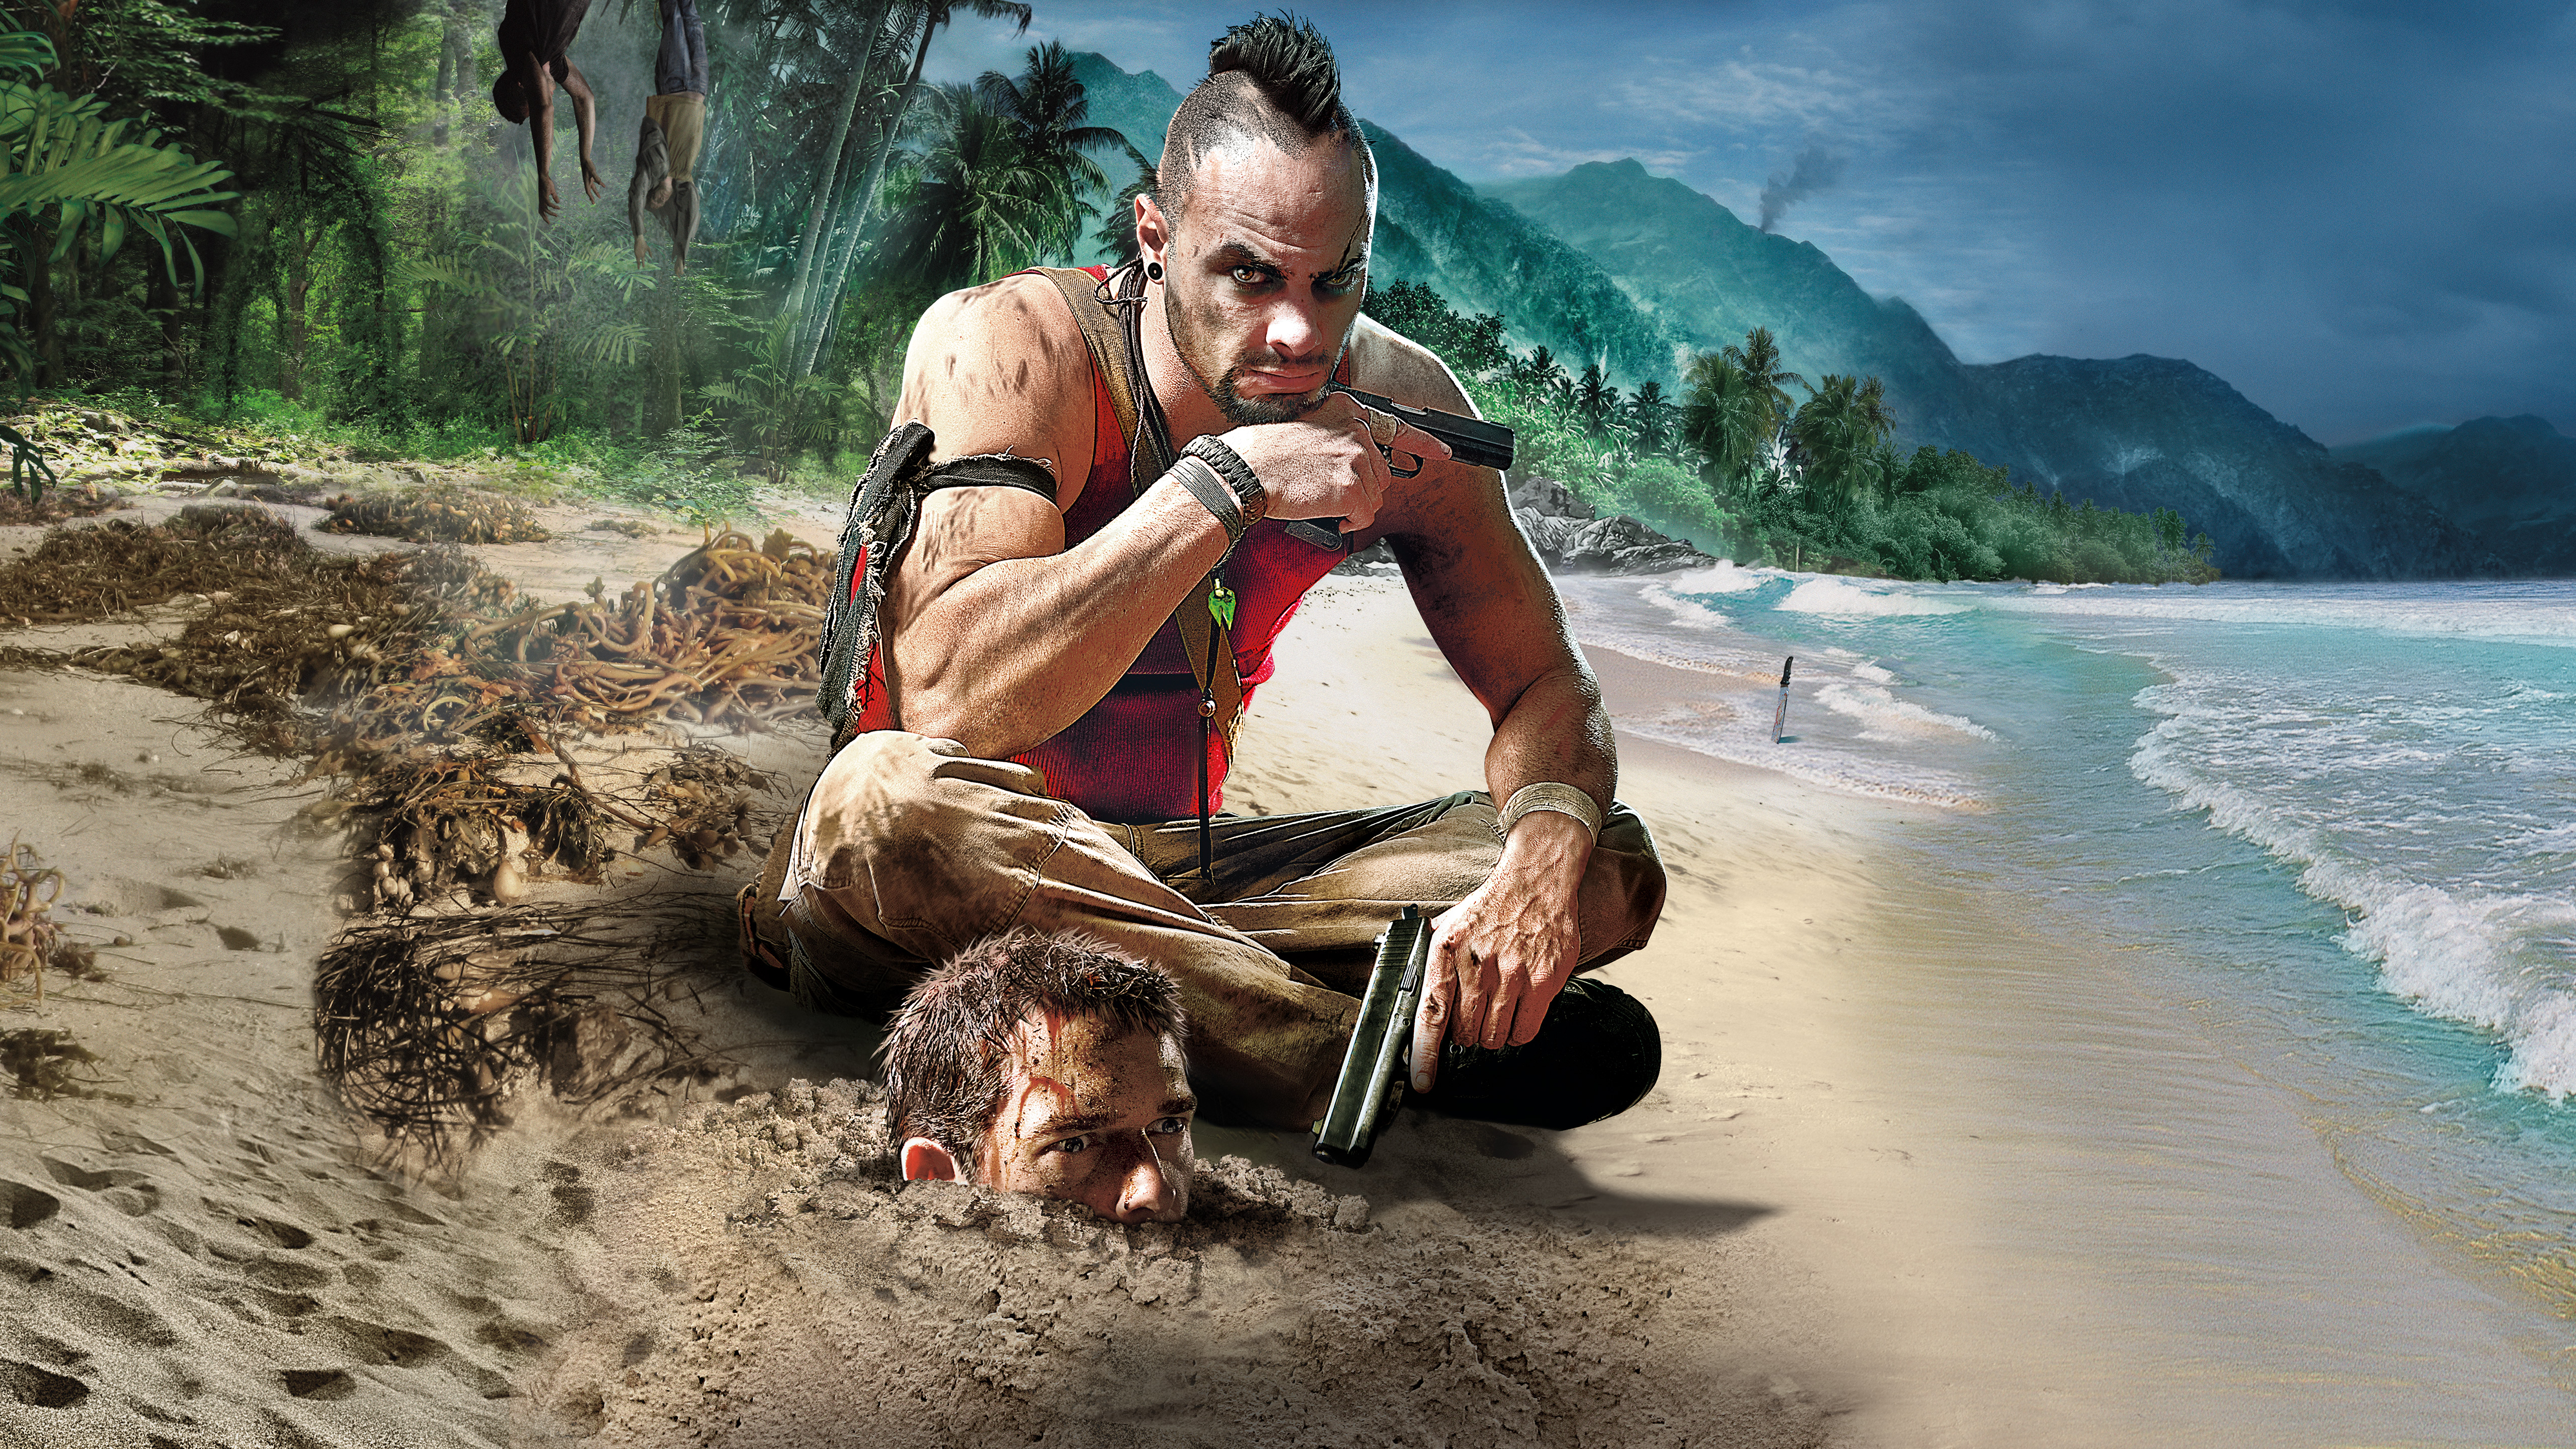 Far Cry 5 Wallpapers: Far Cry 3 5k, HD Games, 4k Wallpapers, Images, Backgrounds